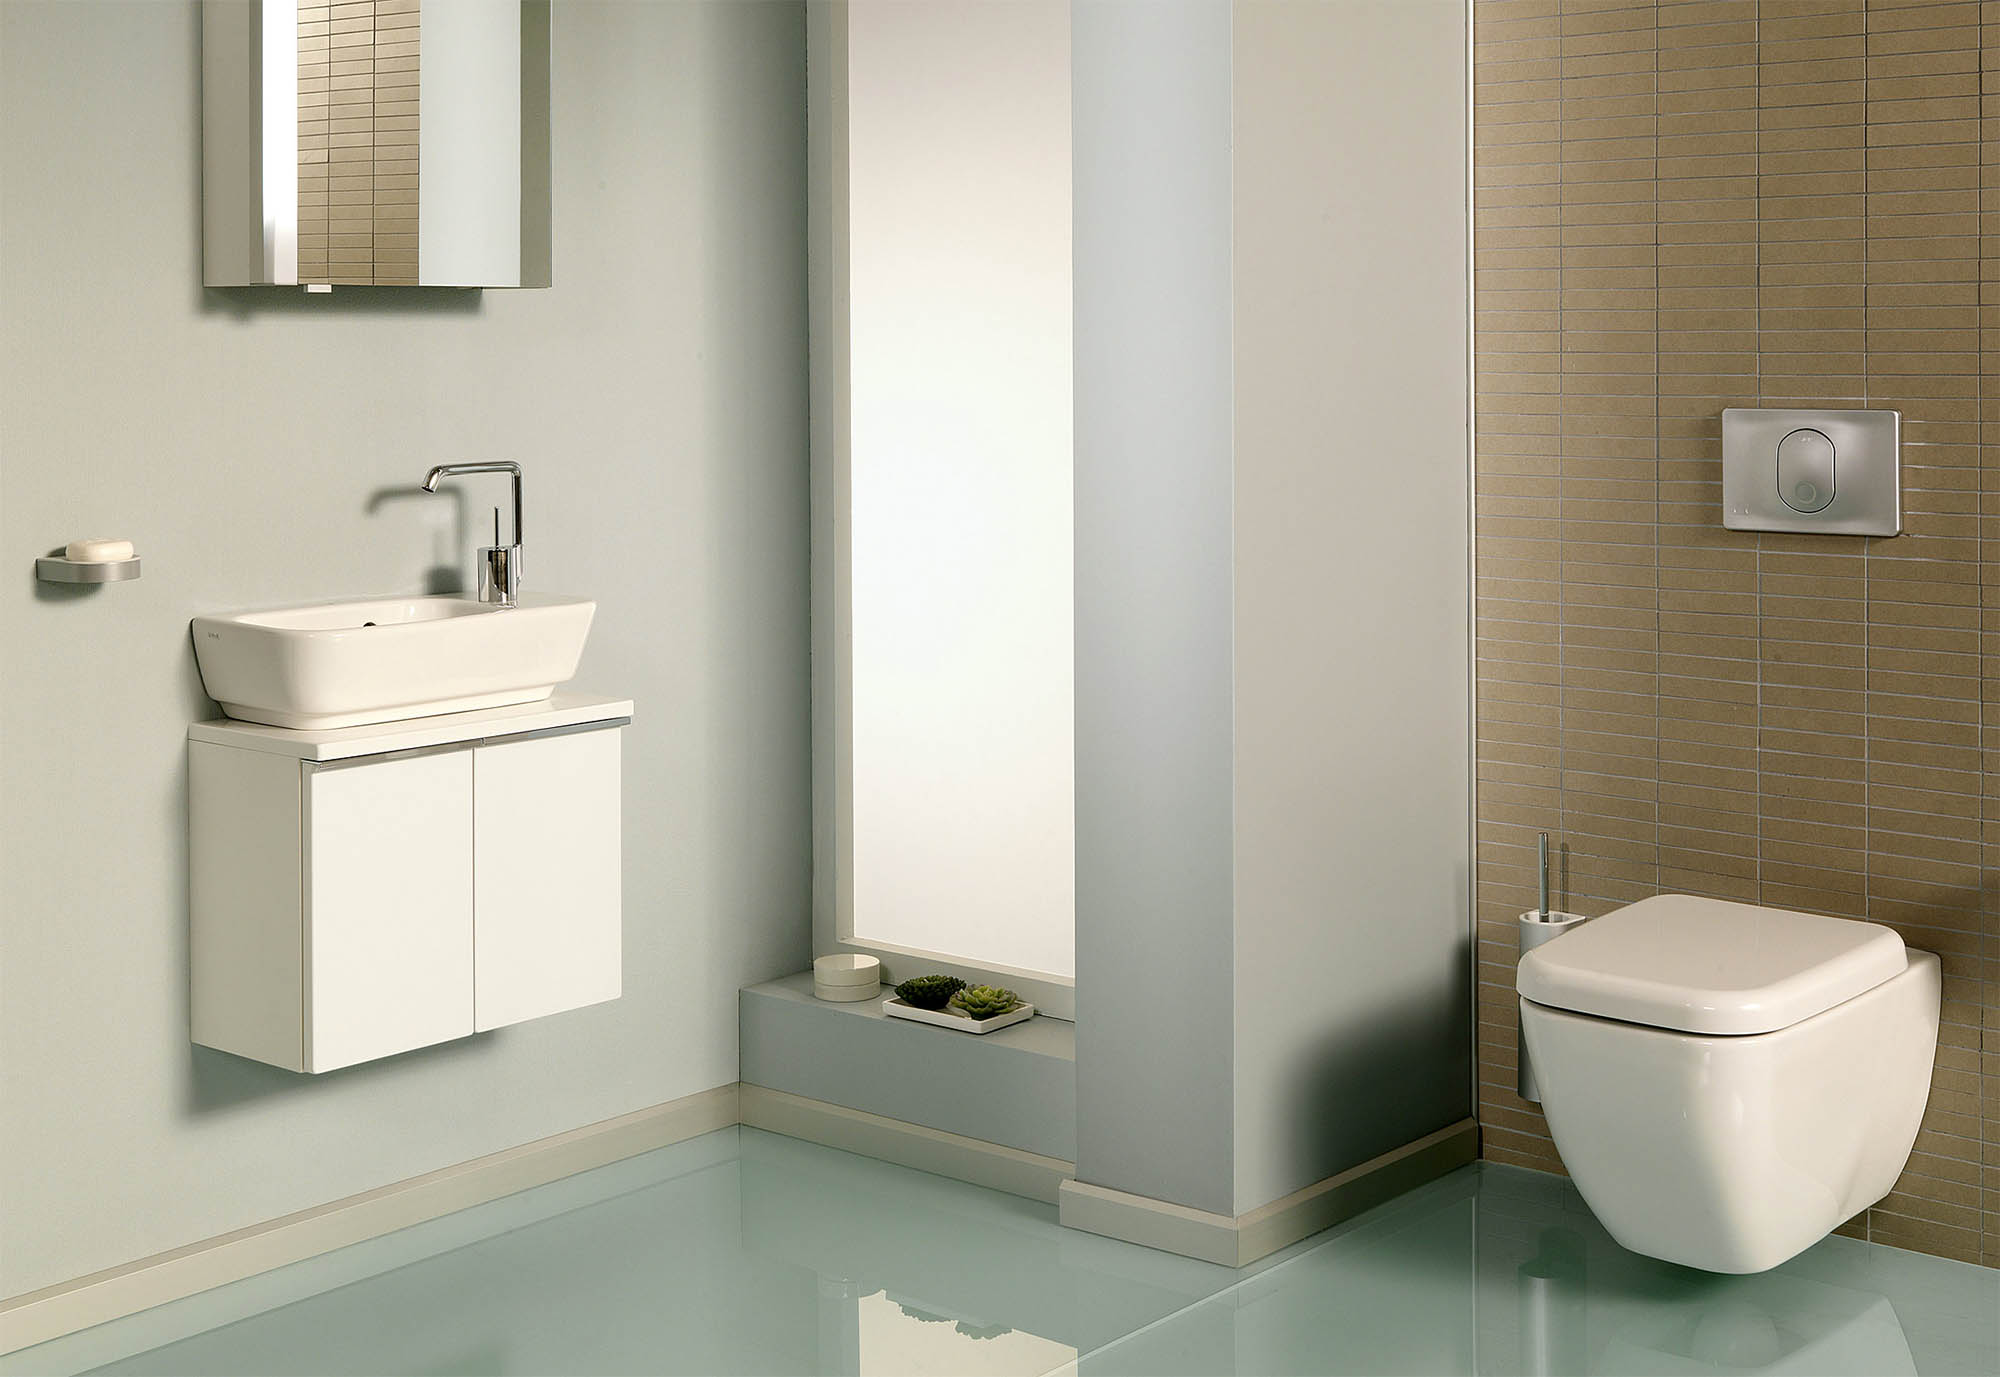 wall mounted bidet with electronic wall switch that controls both temperature and pressure